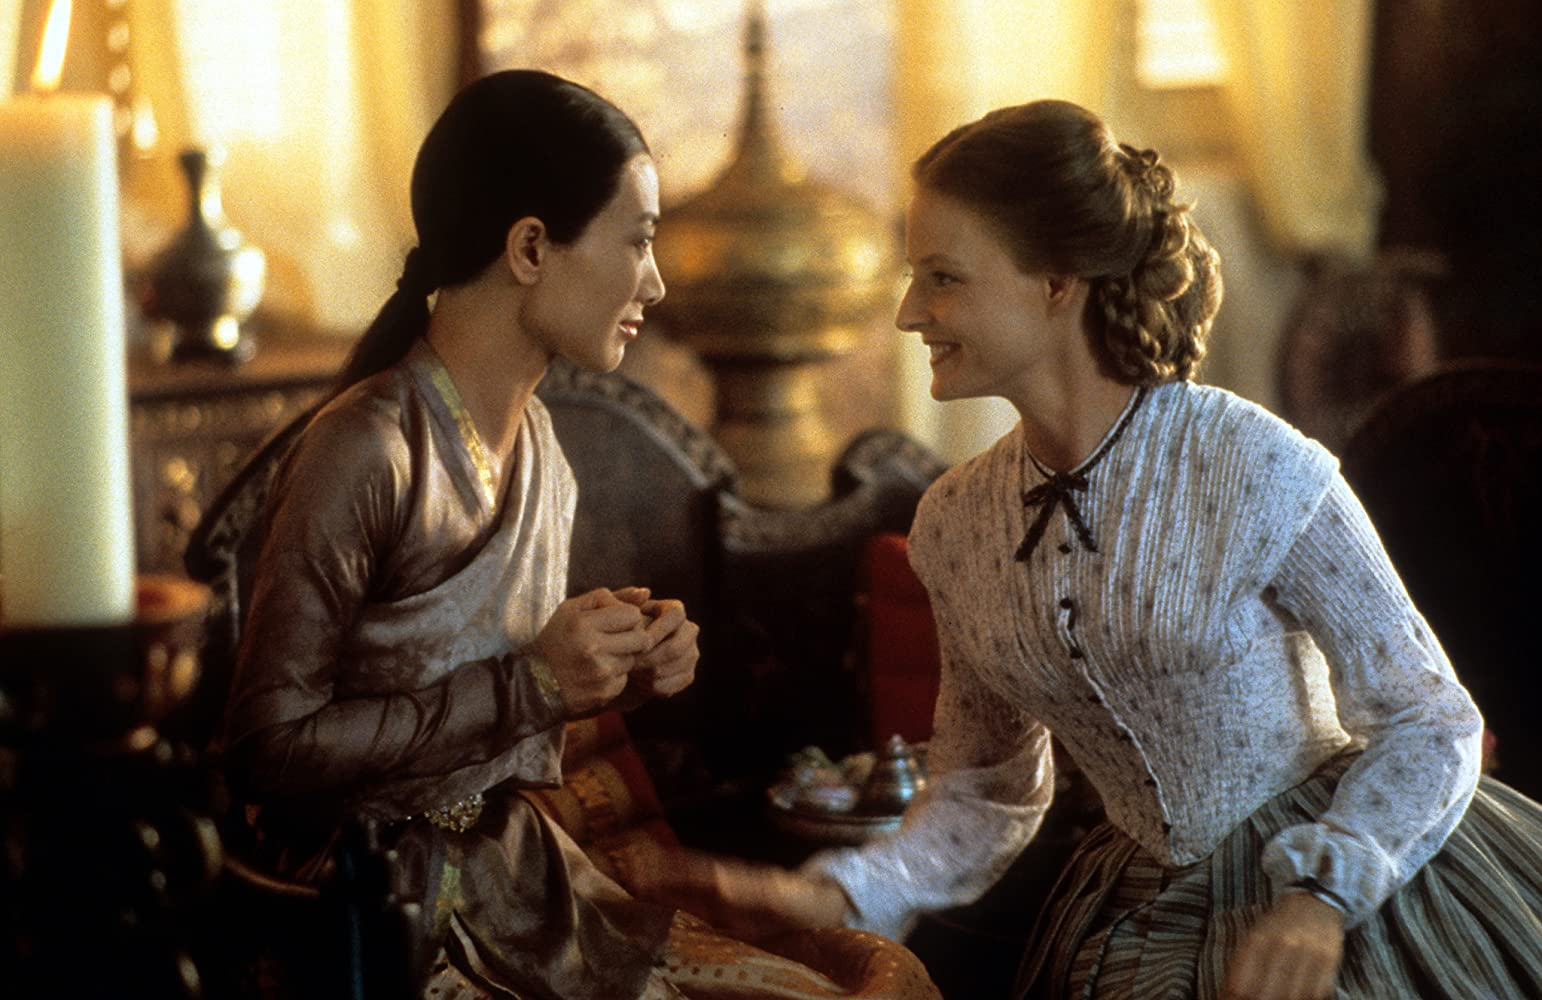 Jodie Foster and Bai Ling in Anna and the King (1999)